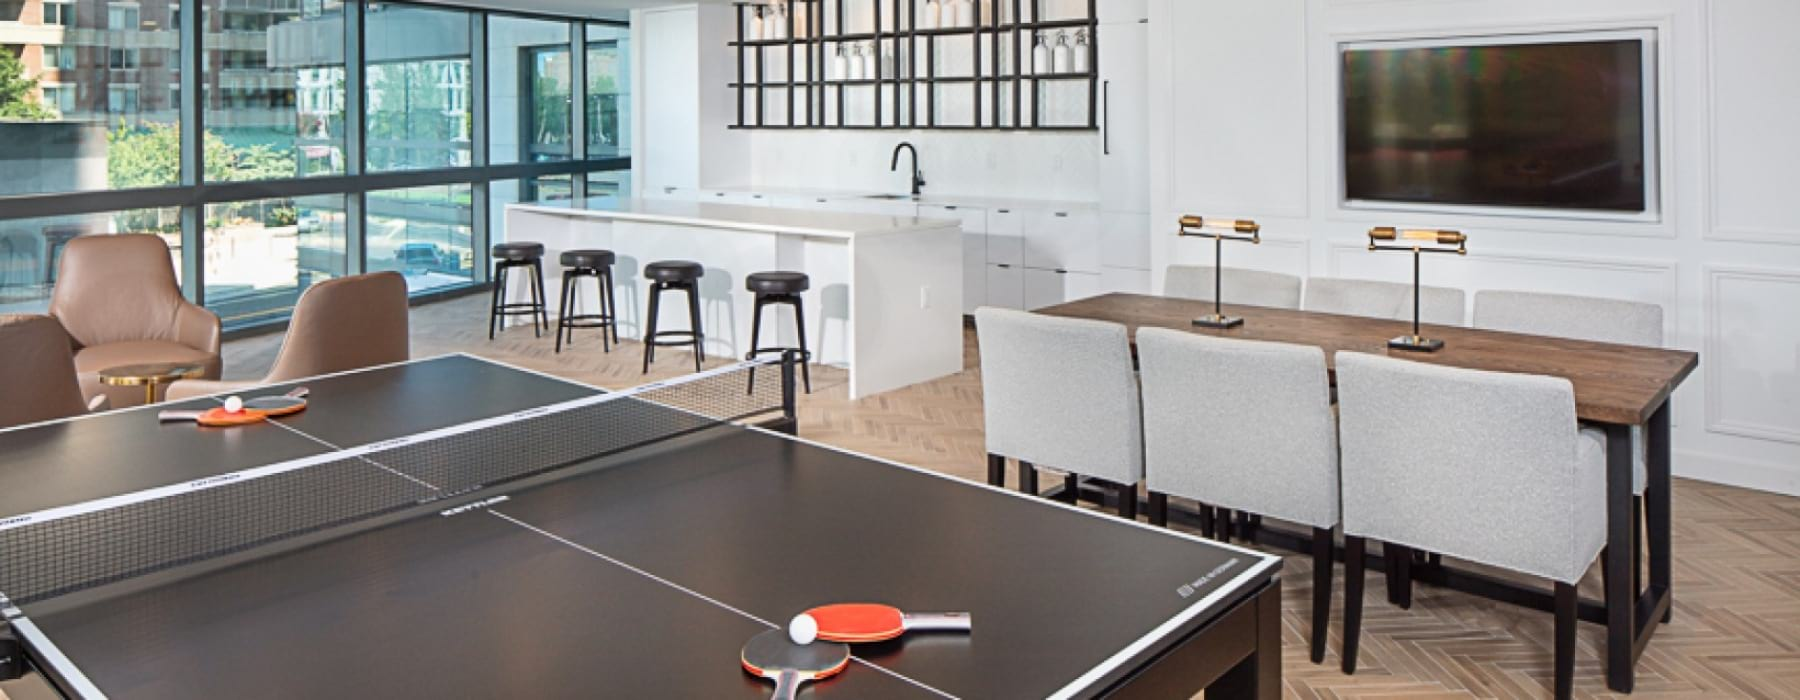 lounge with seating, ping pong and bar area - j sol luxury apartments ballston metro arlington va